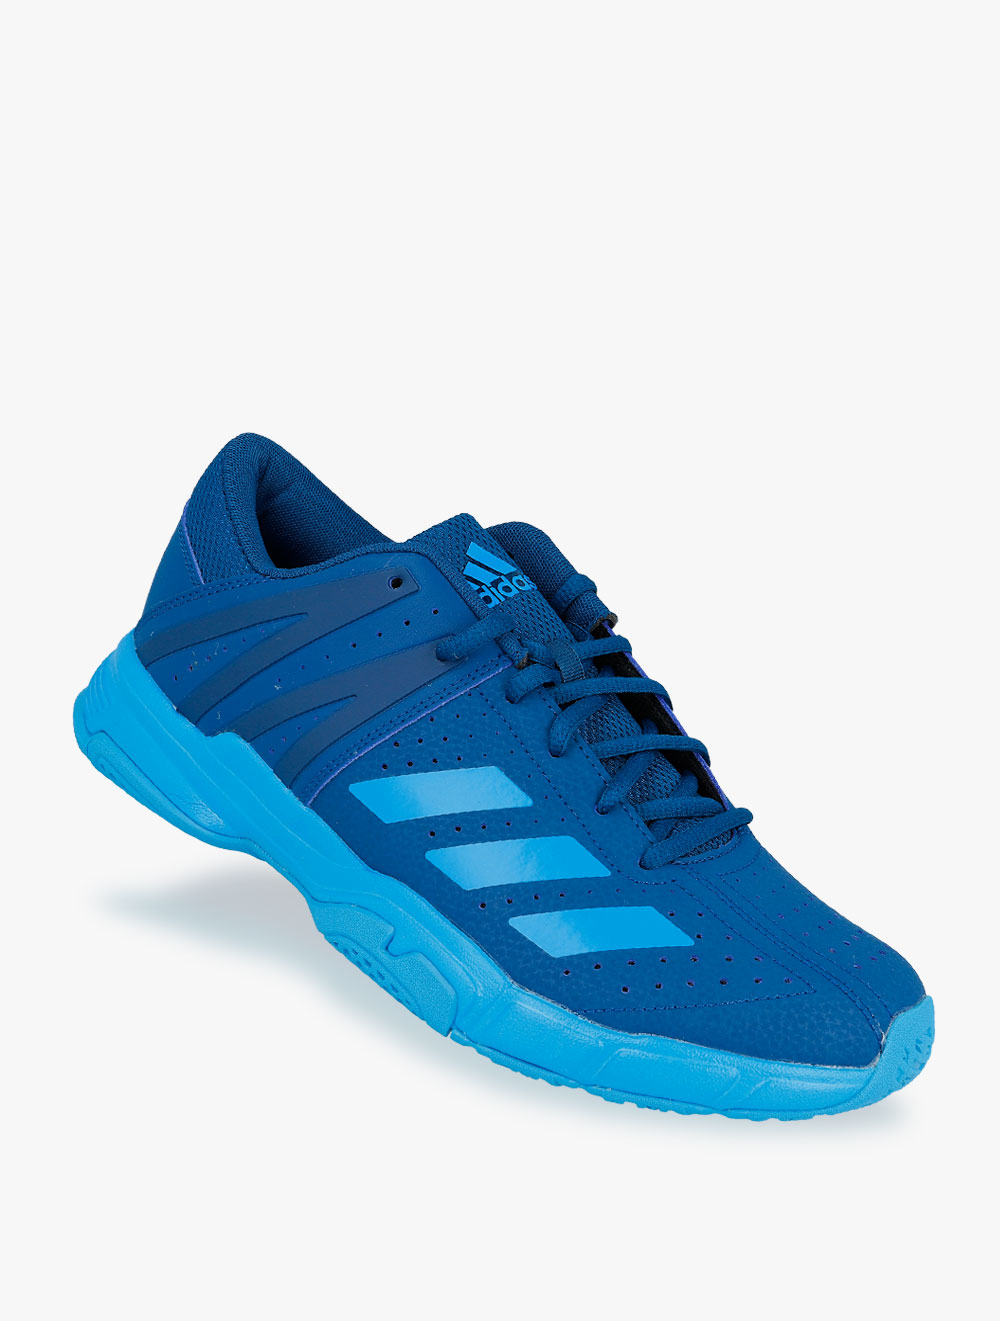 On Sports Buy Adidas Shoesamp; From Indonesia In Clothes BerodxC